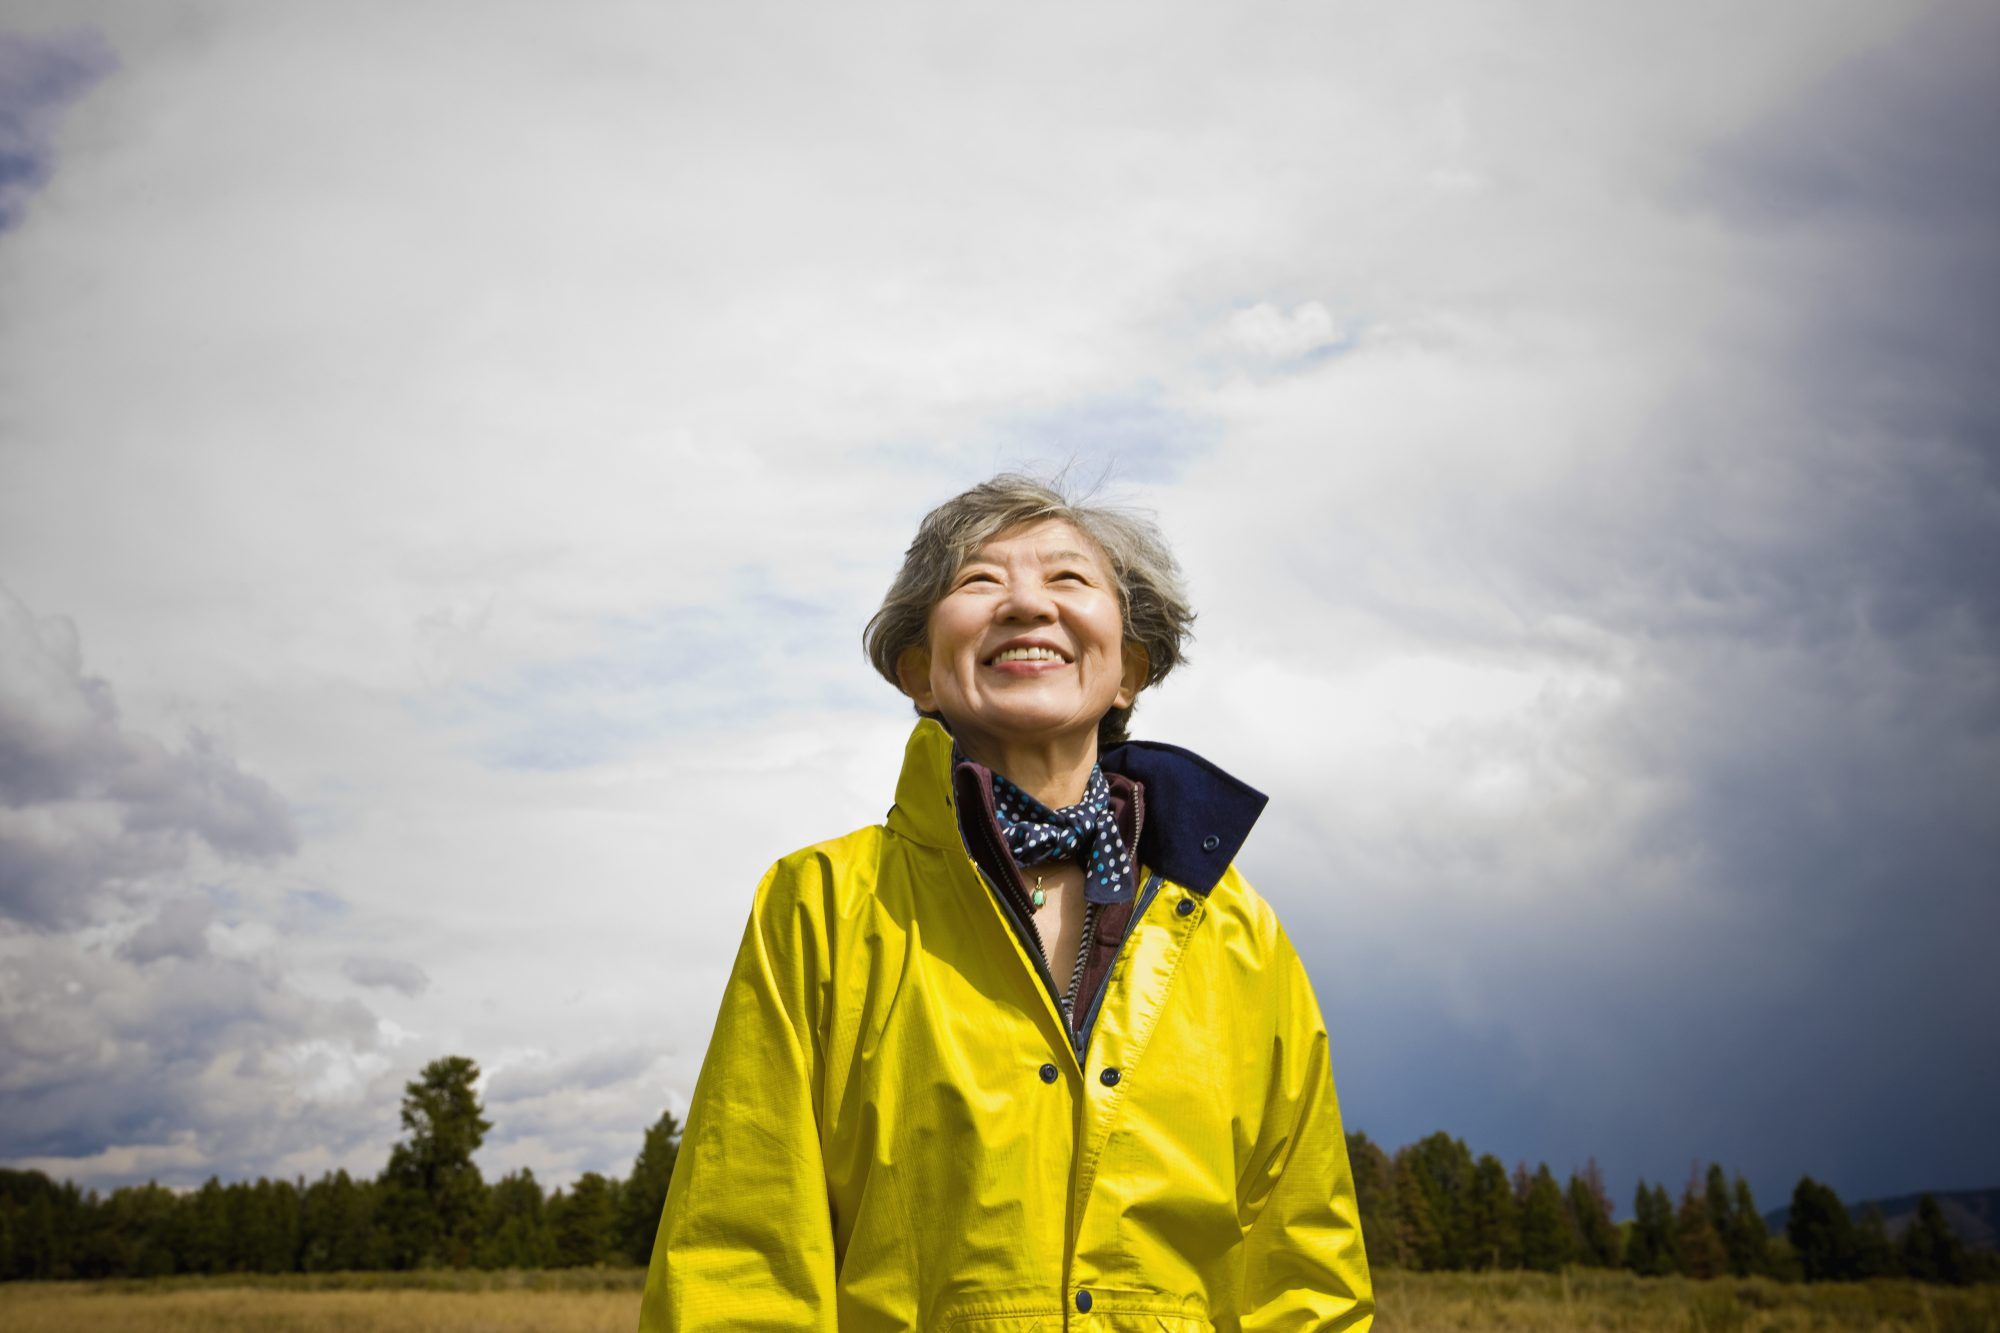 Woman Smiling in Yellow Raincoat